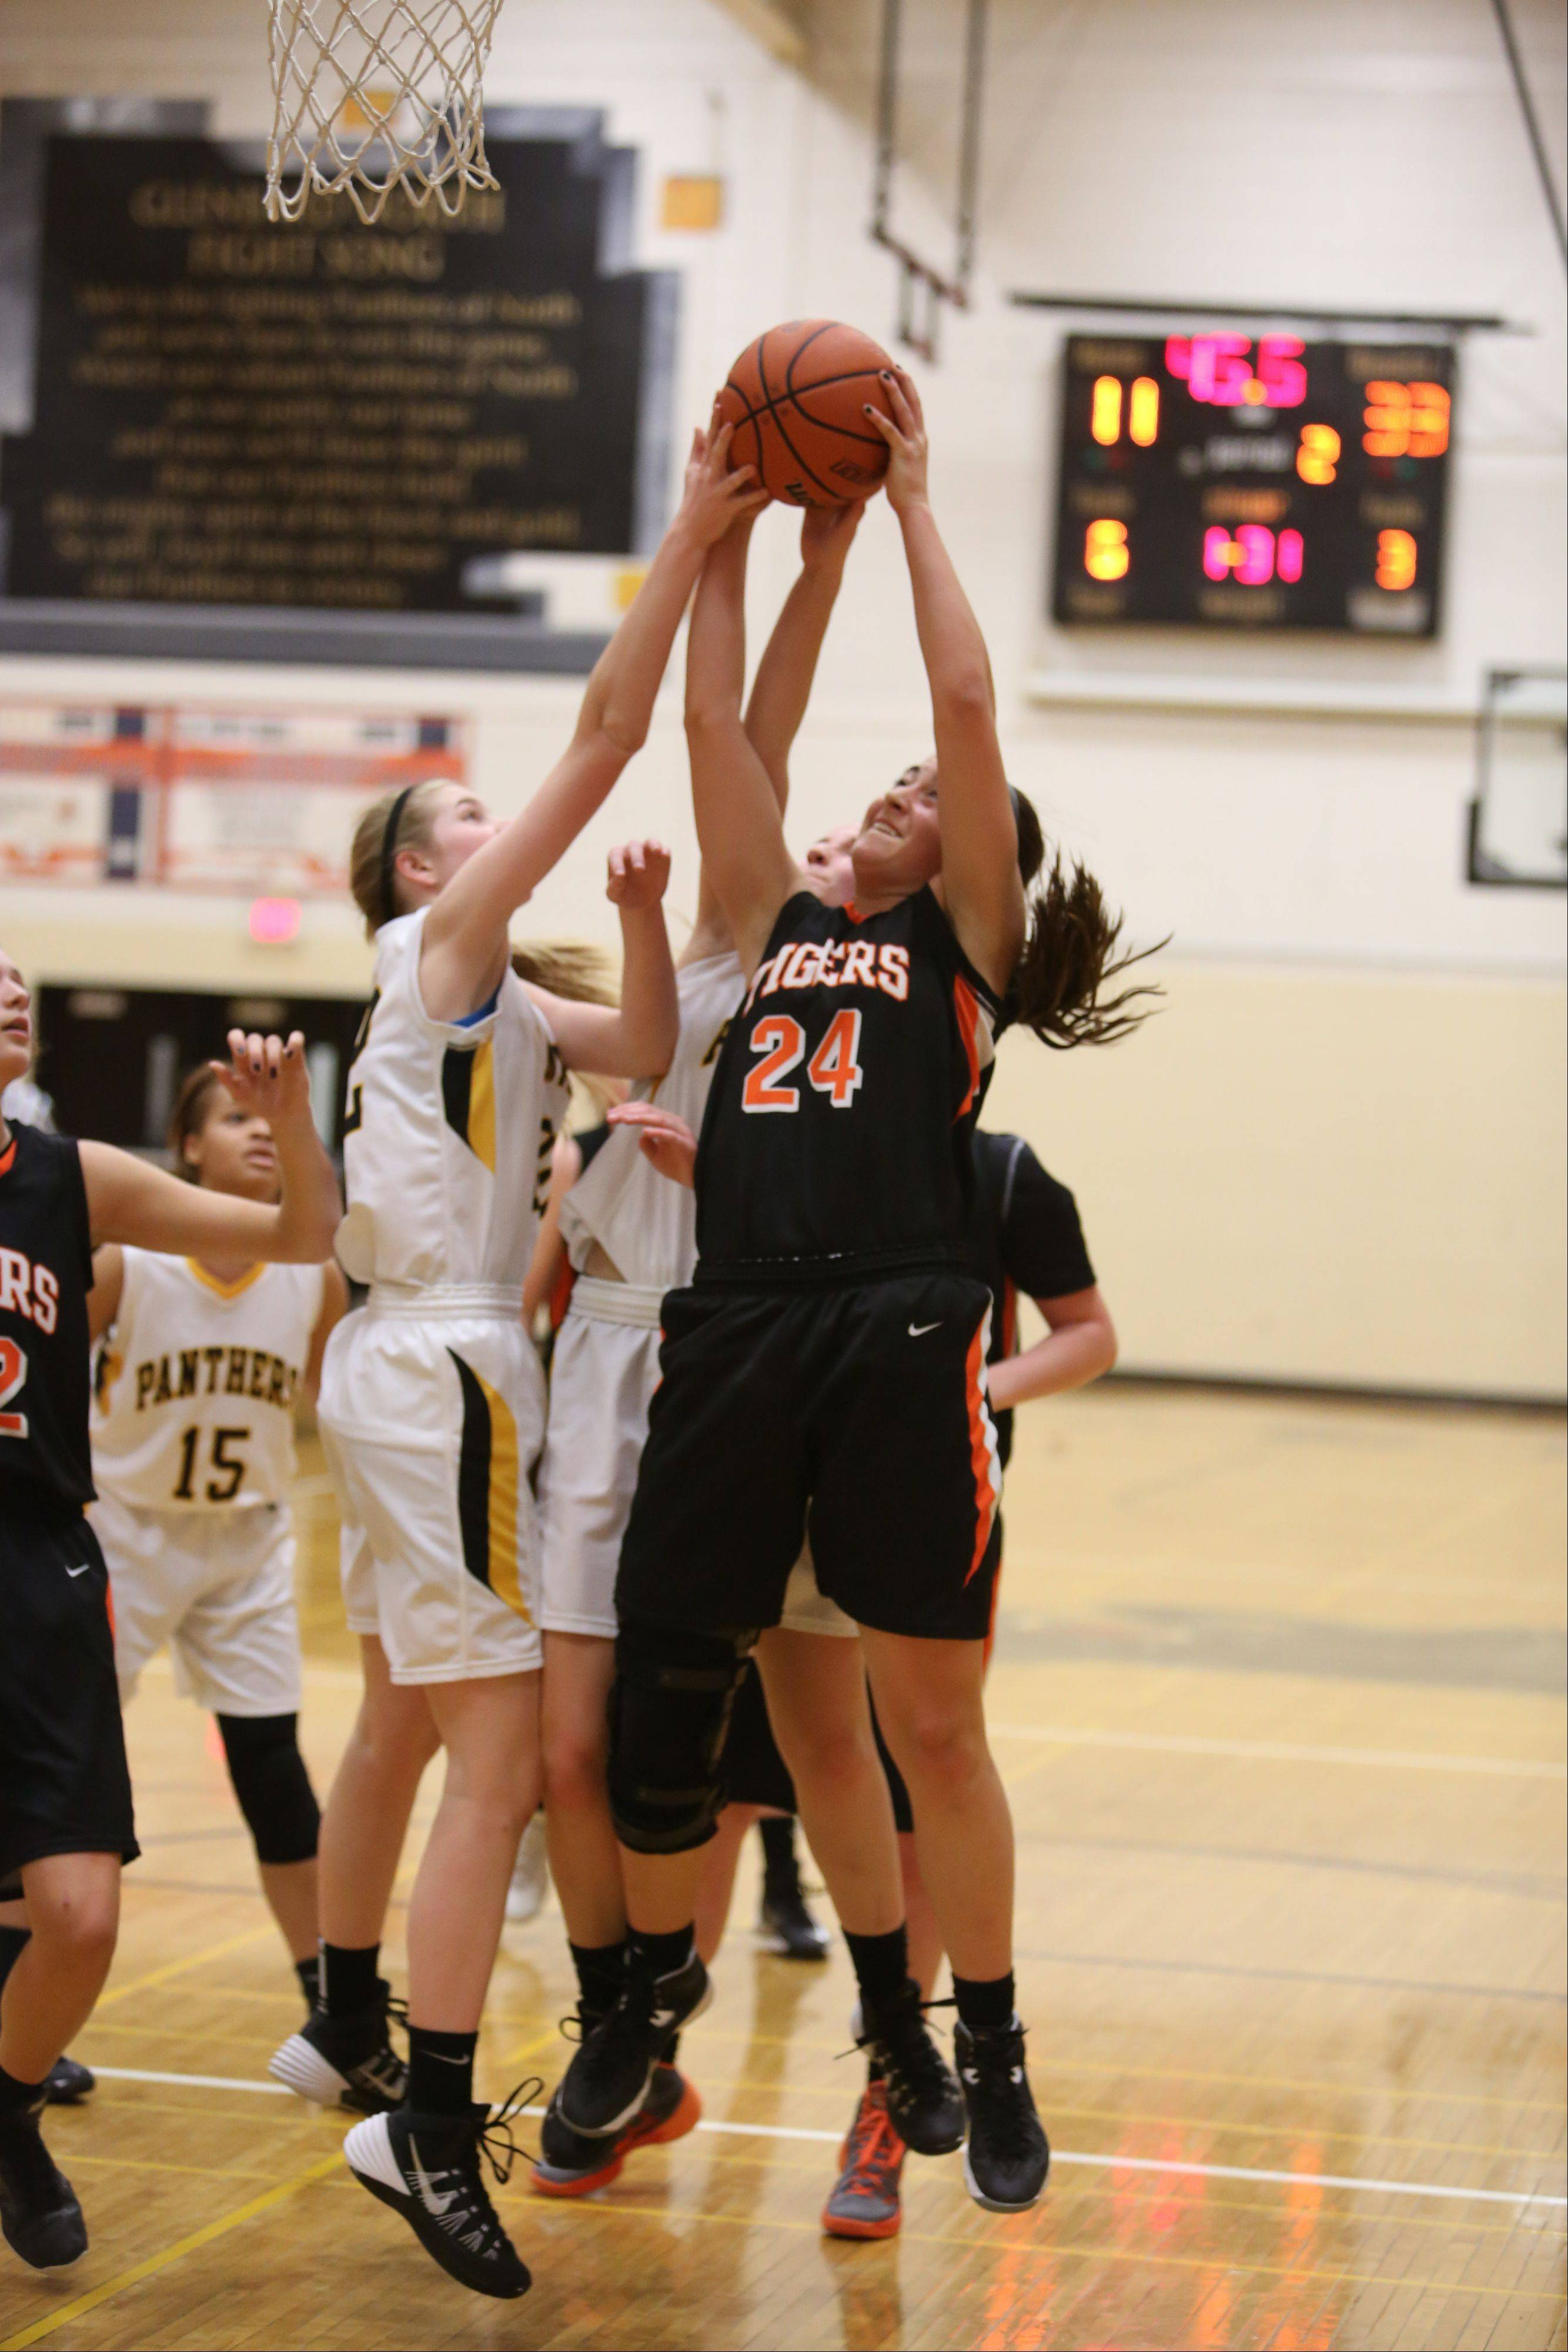 Photos from the Wheaton Warrenville at Glenbard North girls basketball game Monday, Feb. 3.